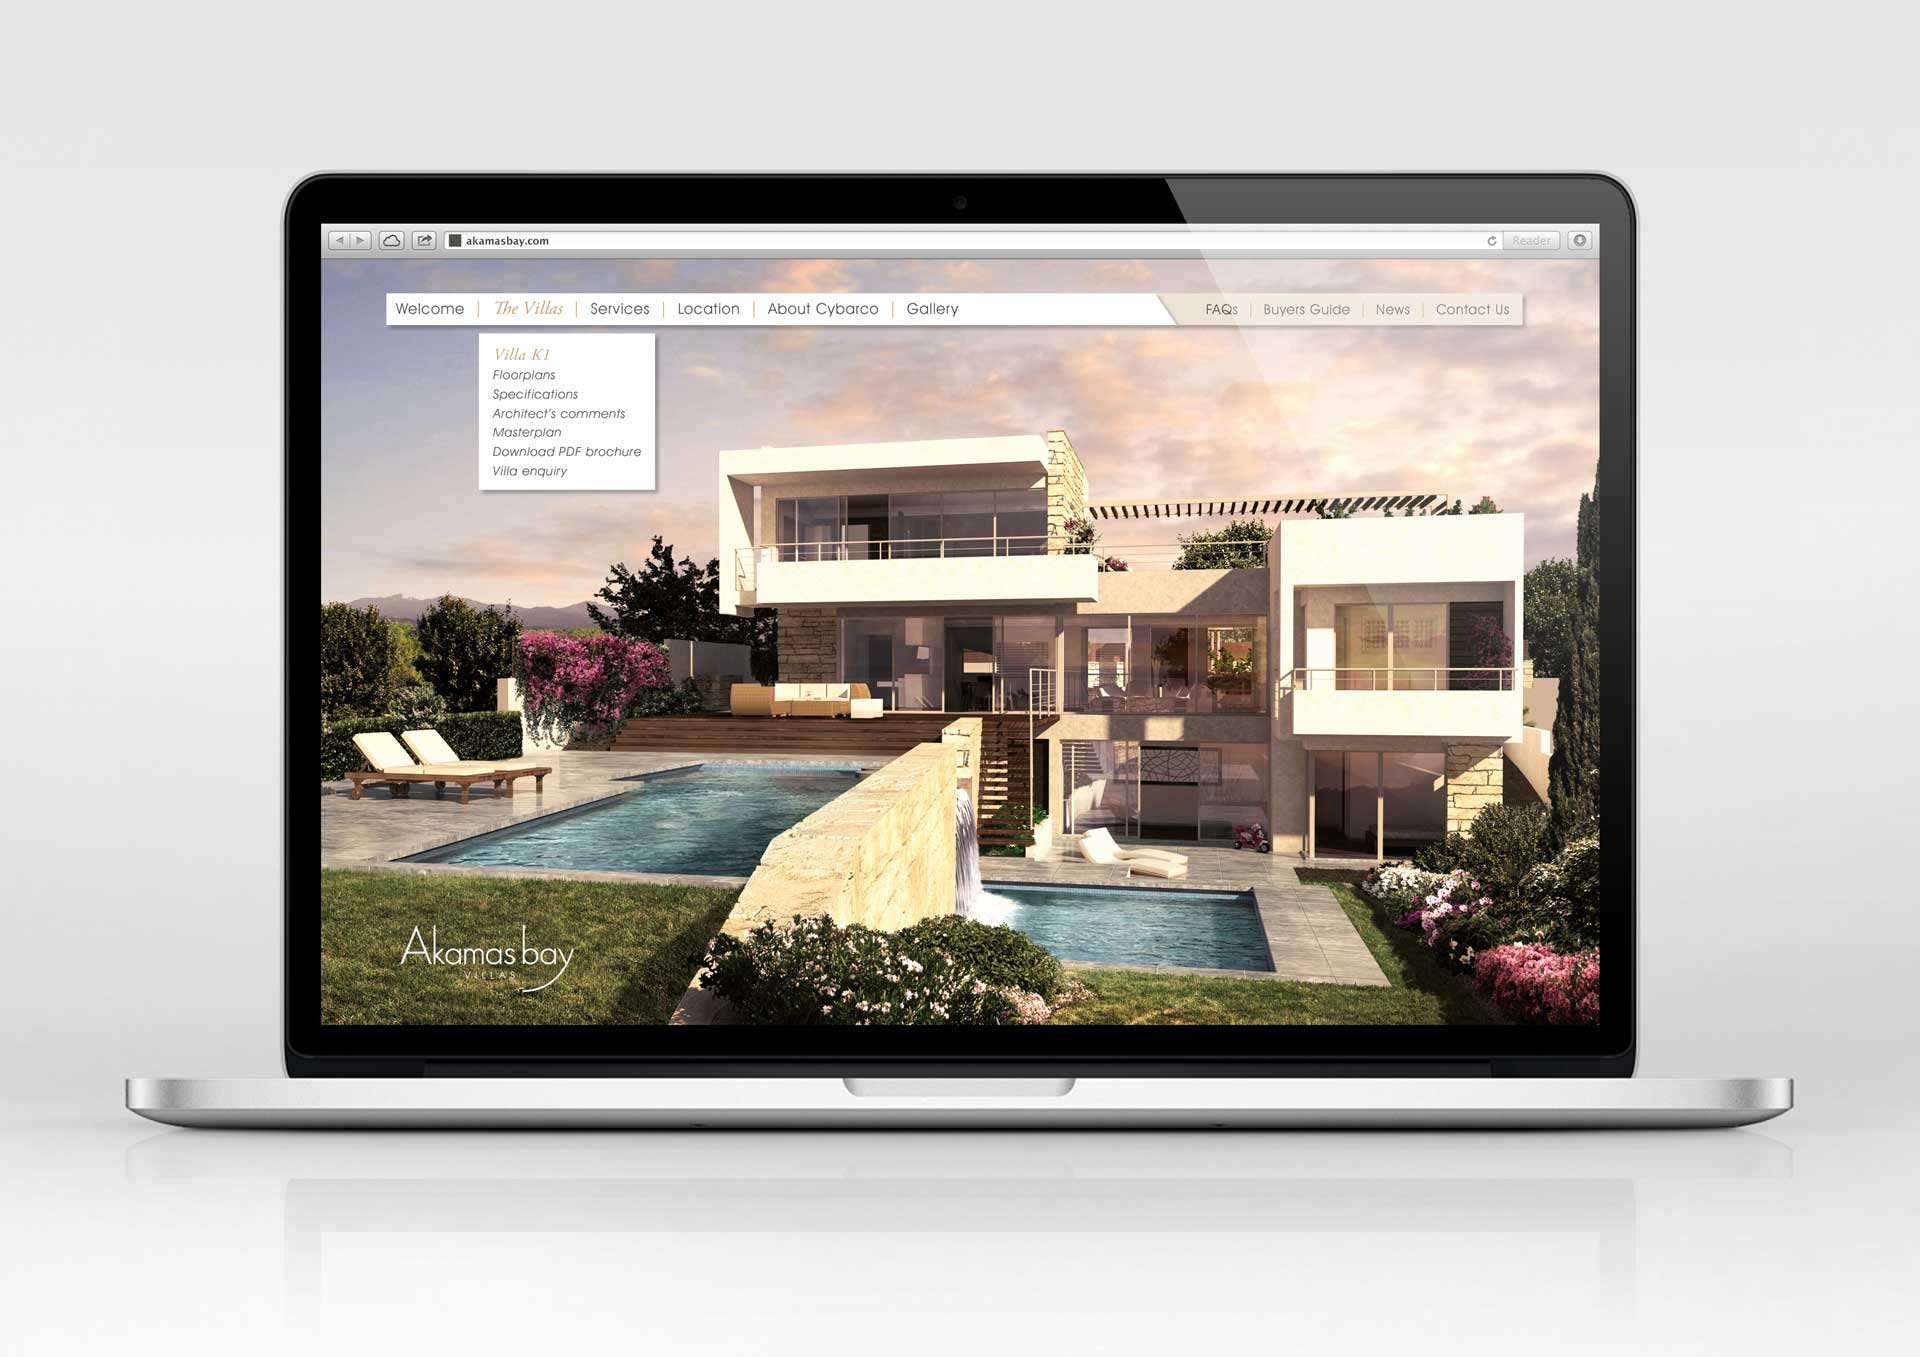 akamas-bay-property-website-3